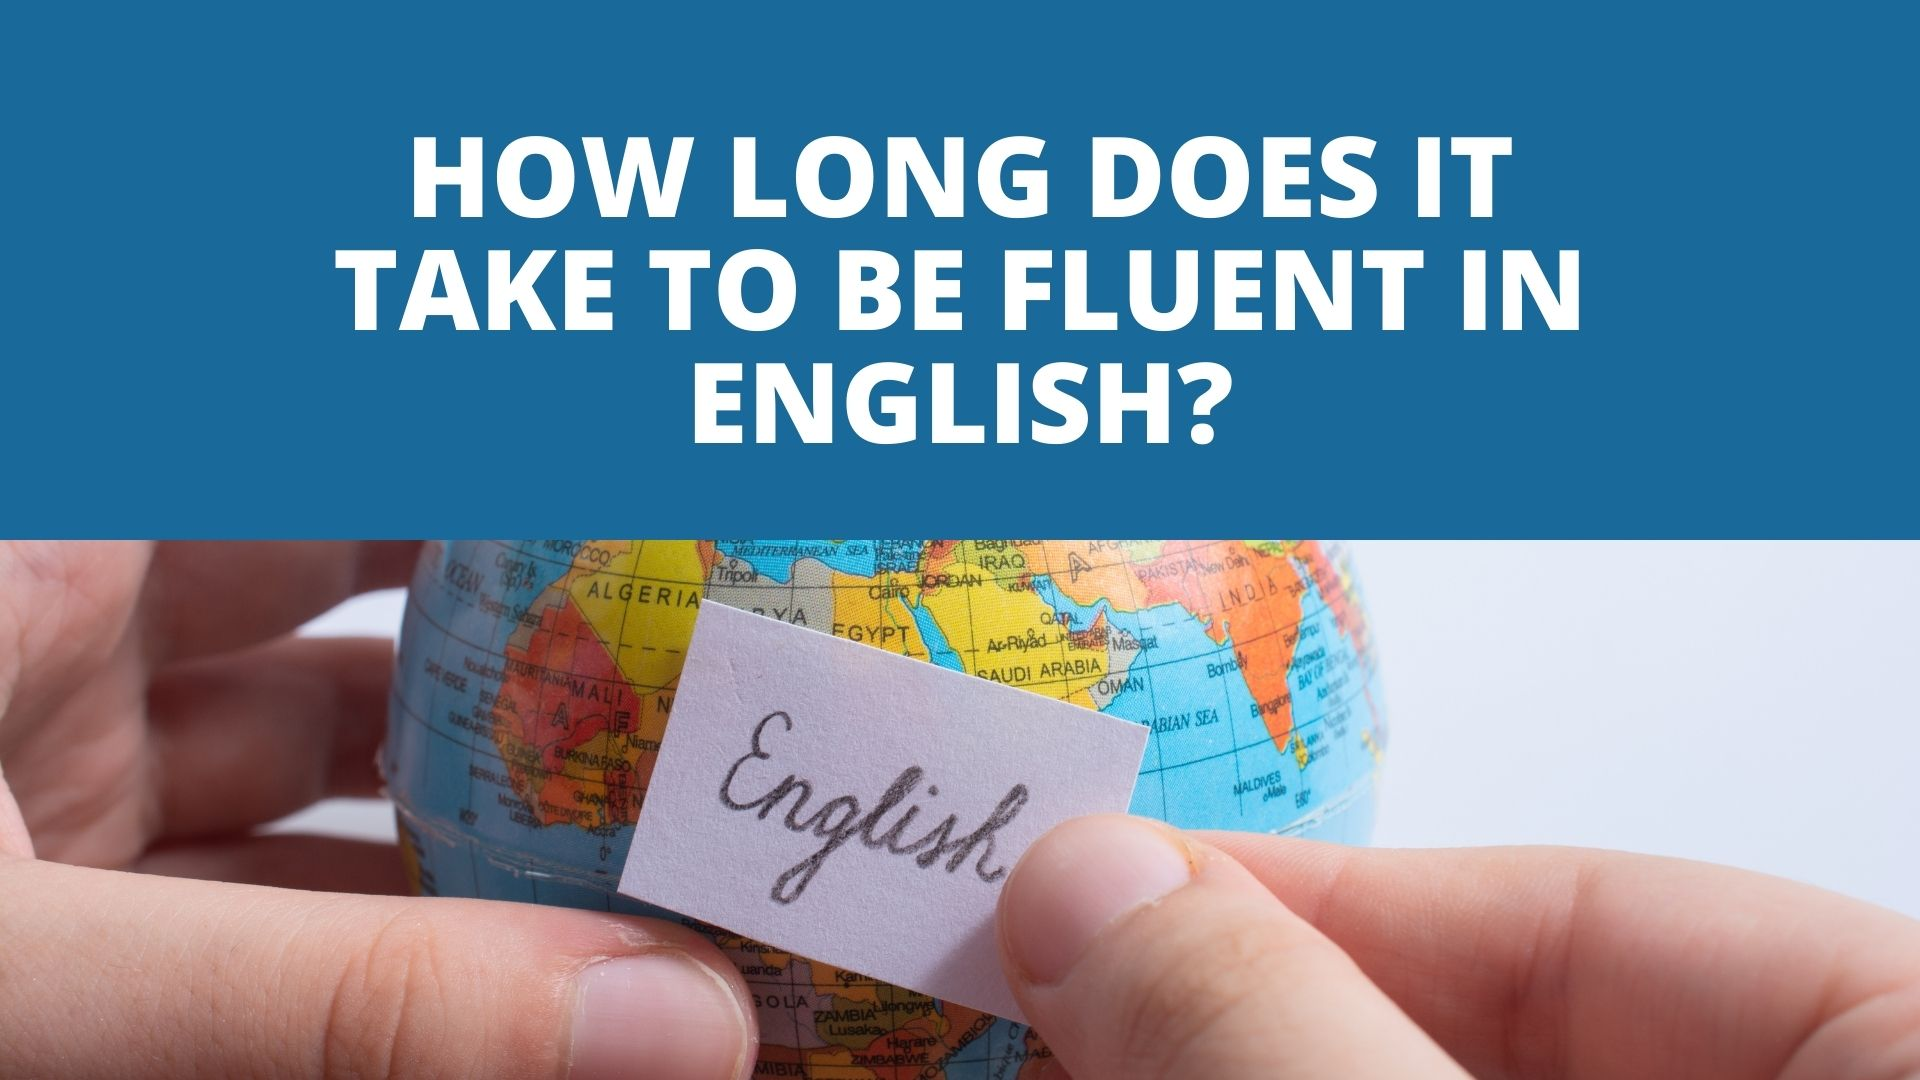 How Long Does It Take To Be Fluent In English